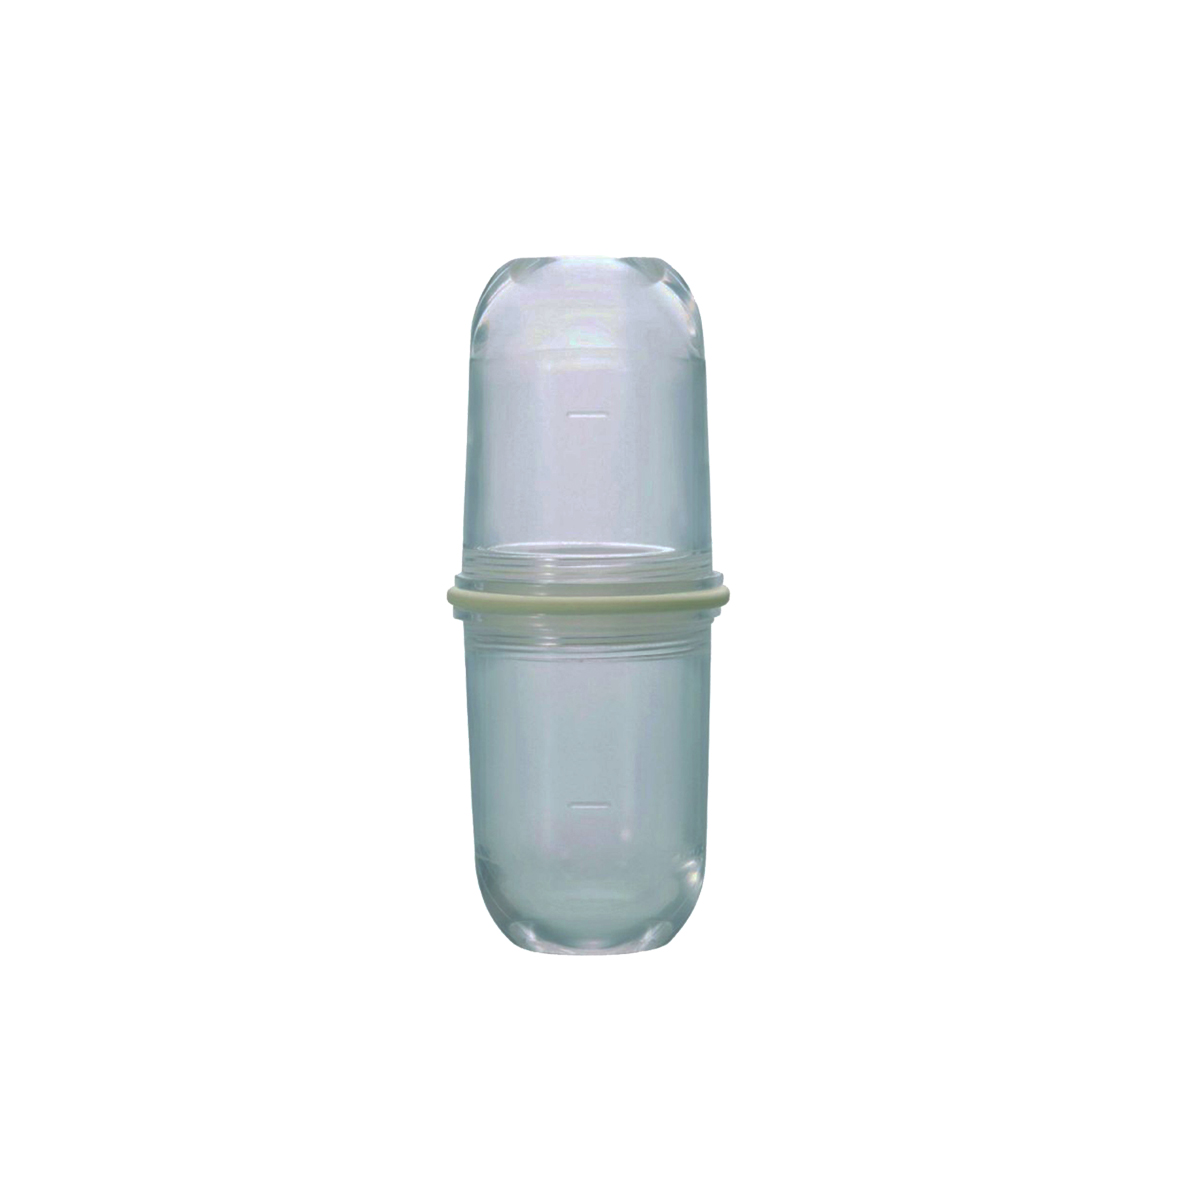 Hario Latte Shaker Off White LS-70-OW